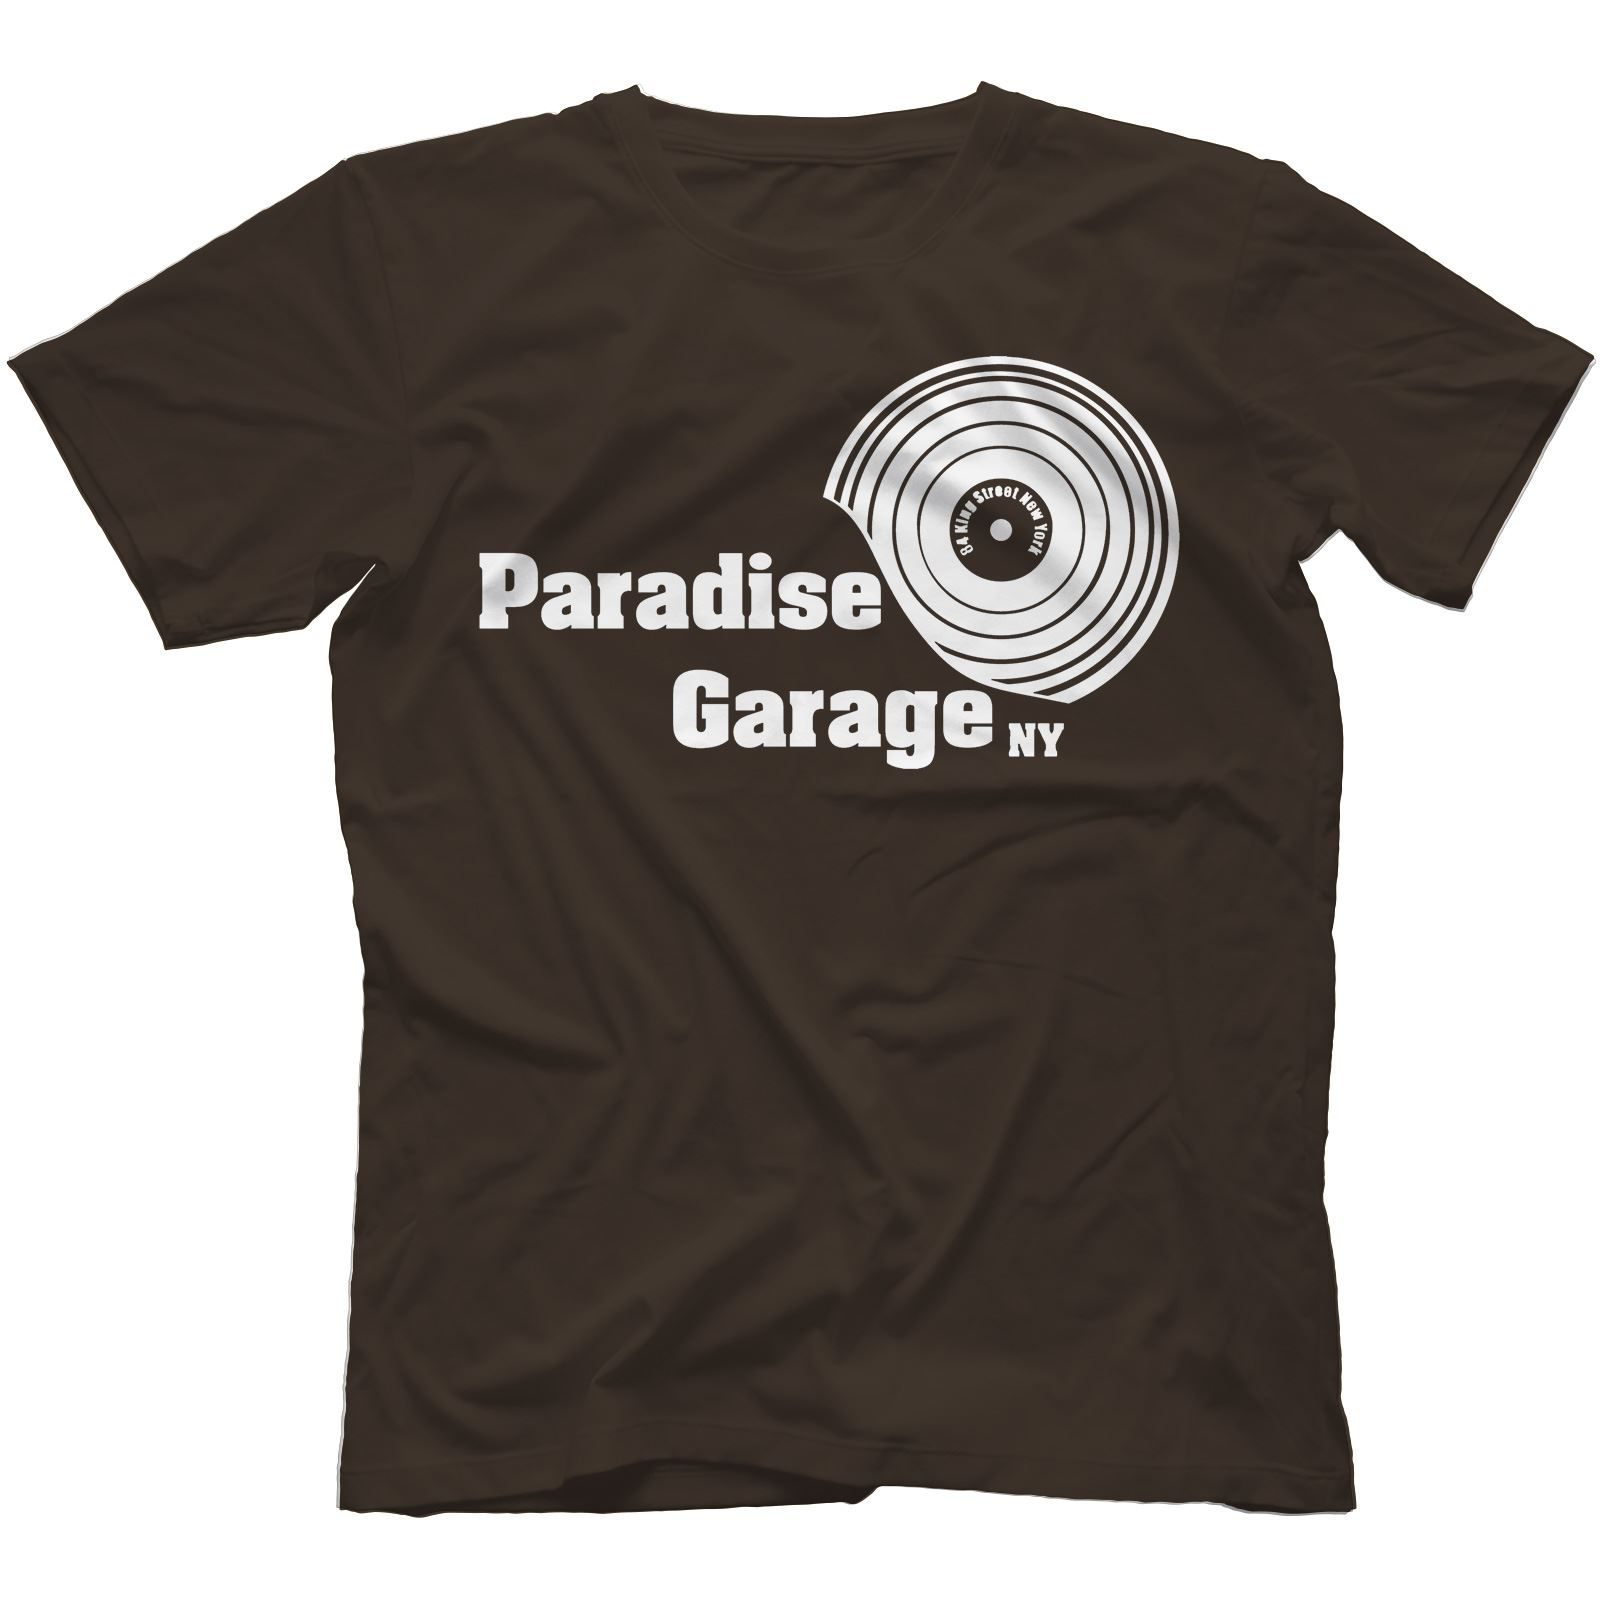 Paradise Garage T-Shirt 100% Cotton Disco House Larry Levan Salsoul Chicago